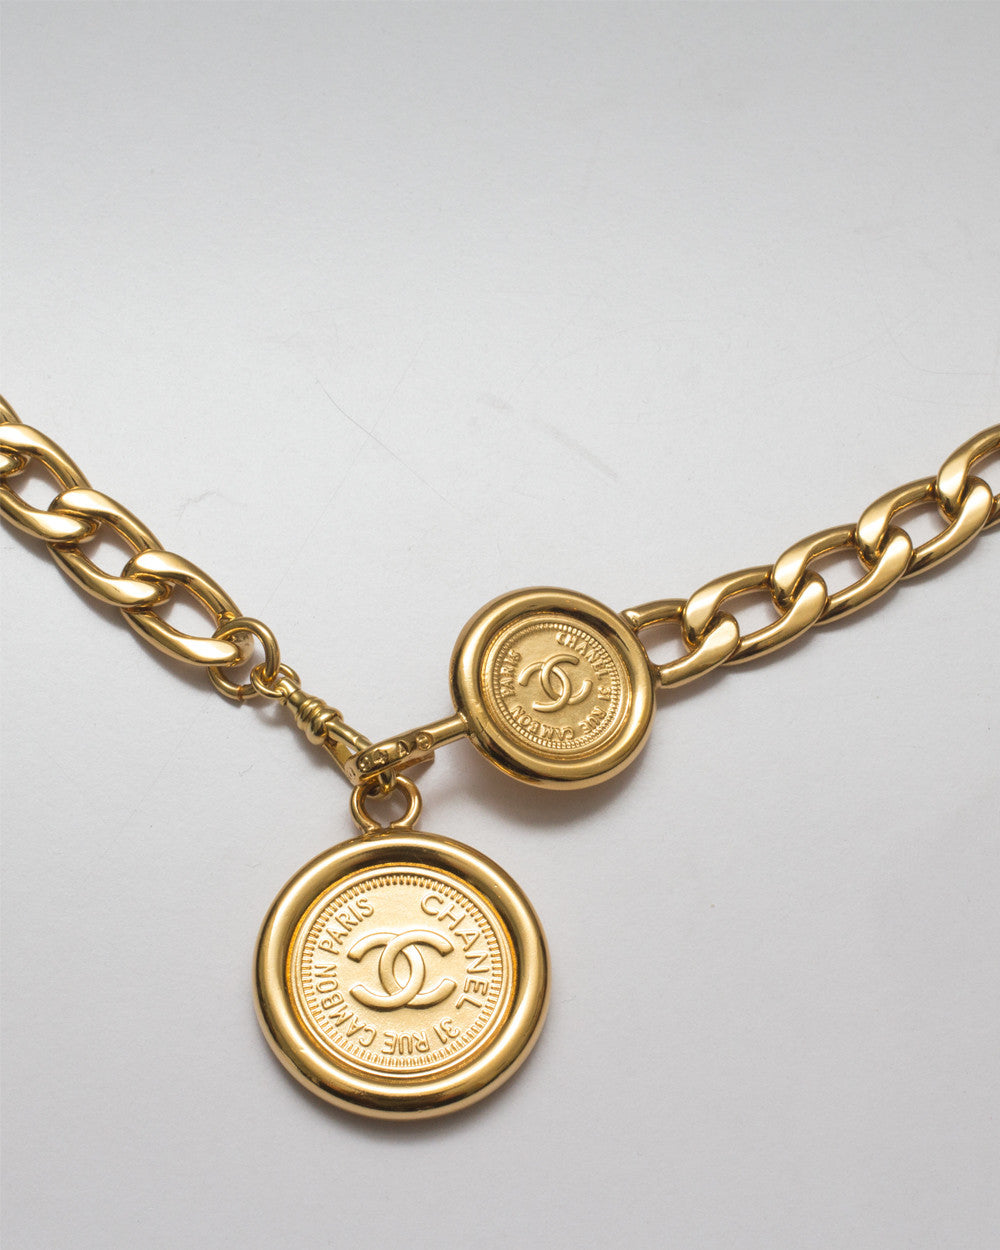 Vintage Chanel Chain Belt